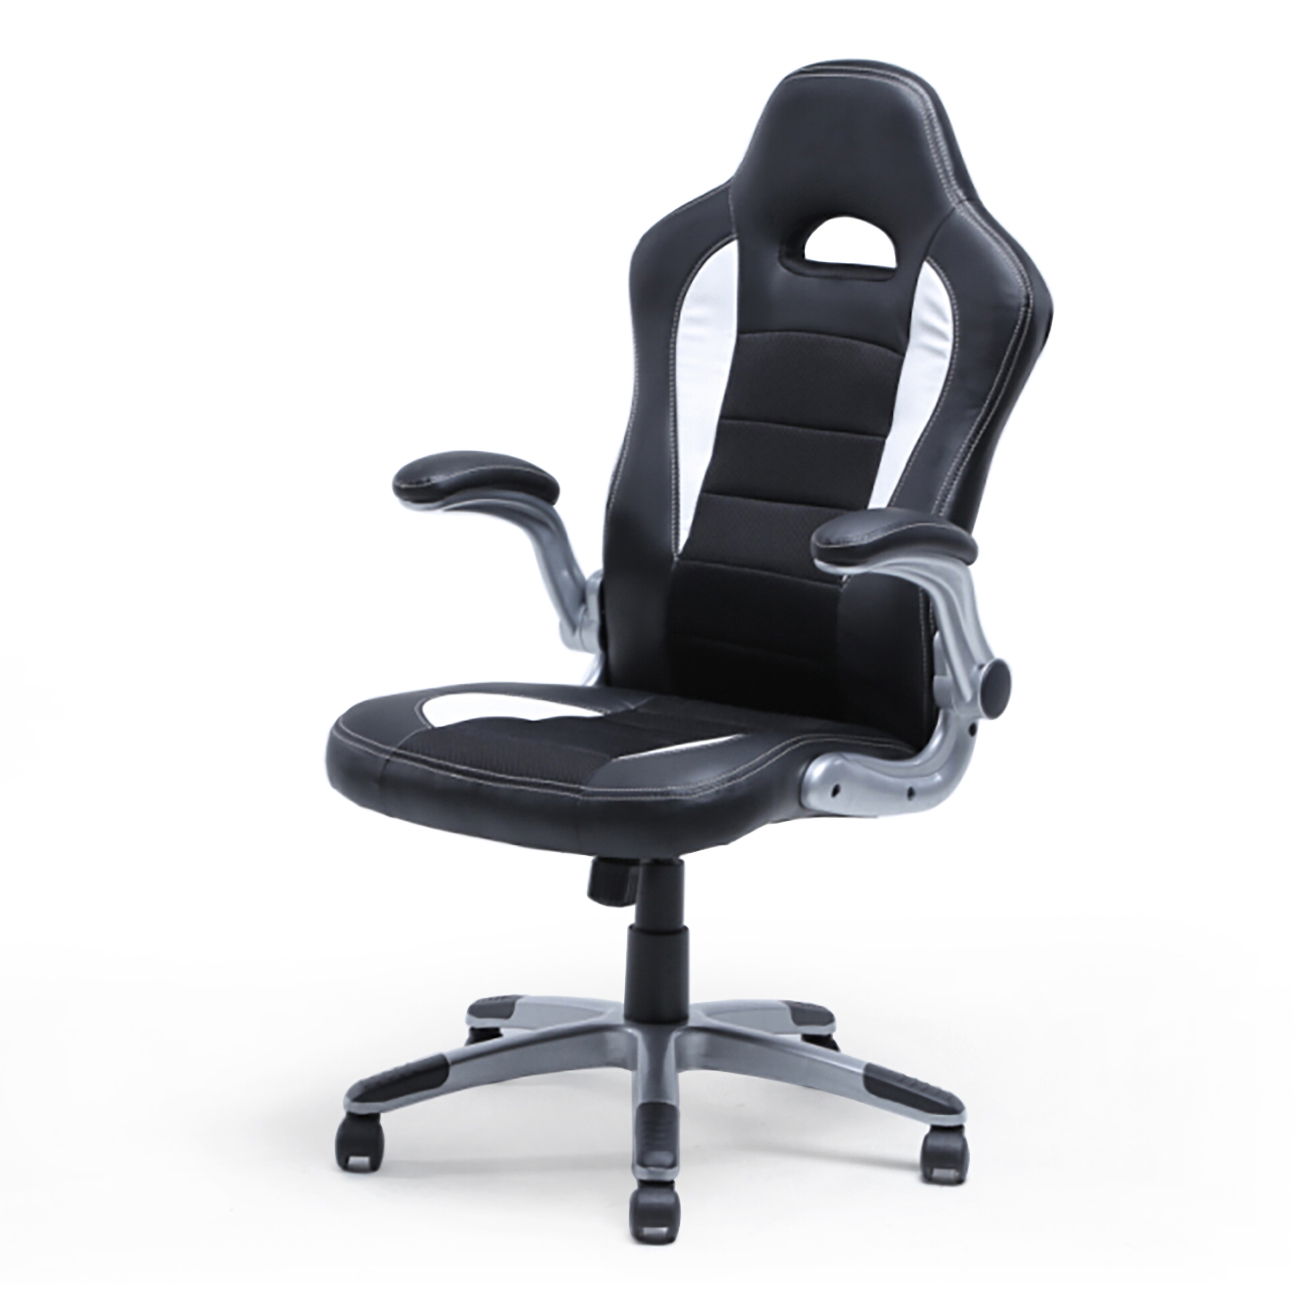 Aliexpress.com : Buy Computer Chair 360 Degree Swivel